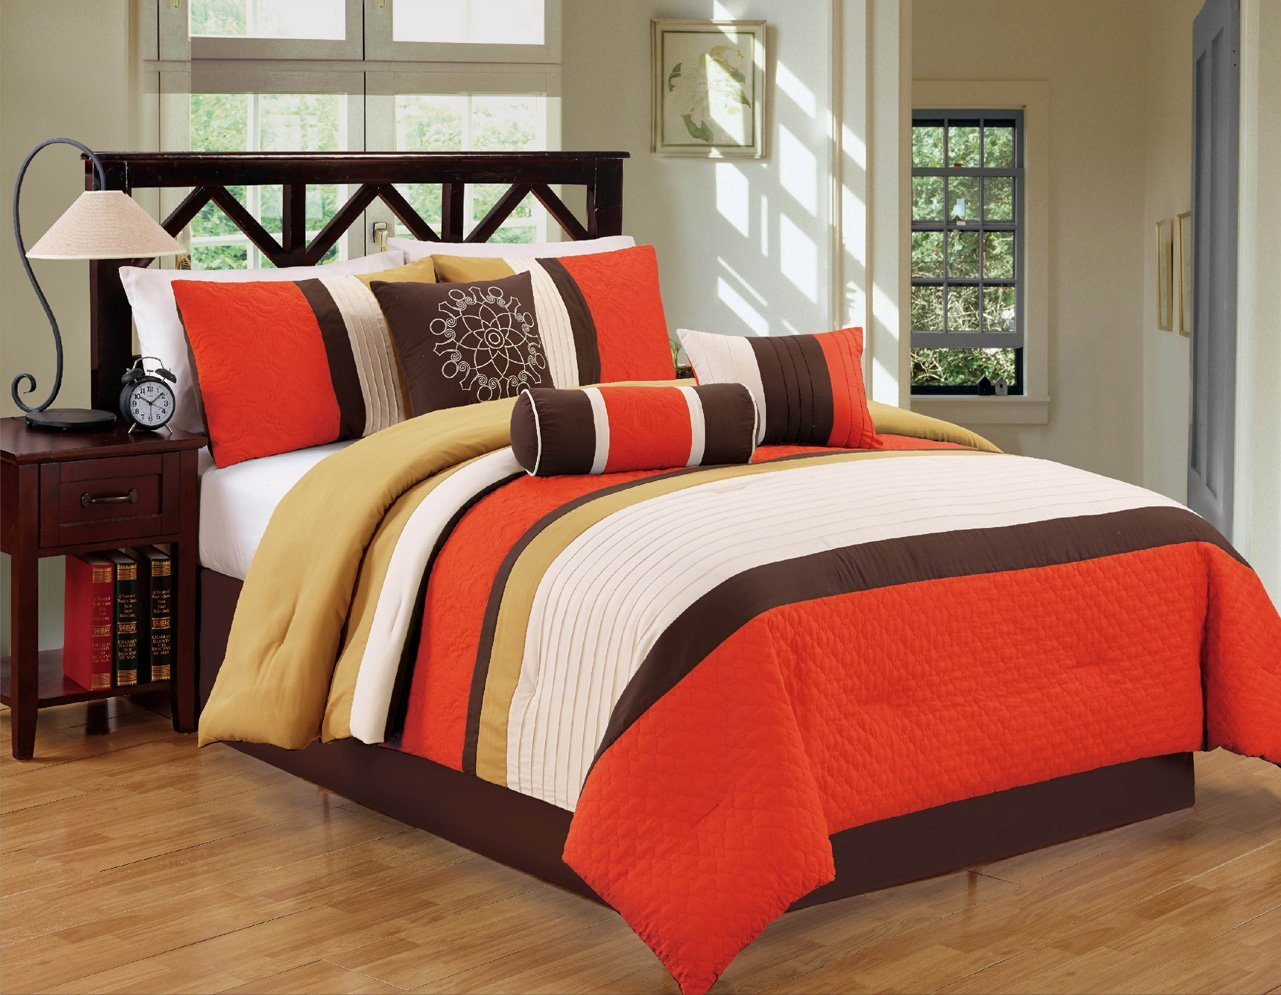 Buy Modern 7 Piece Bedding Orange Brown White Pin Tuck Emboidered King Comforter Set With Accent Pillows In Cheap Price On Alibaba Com